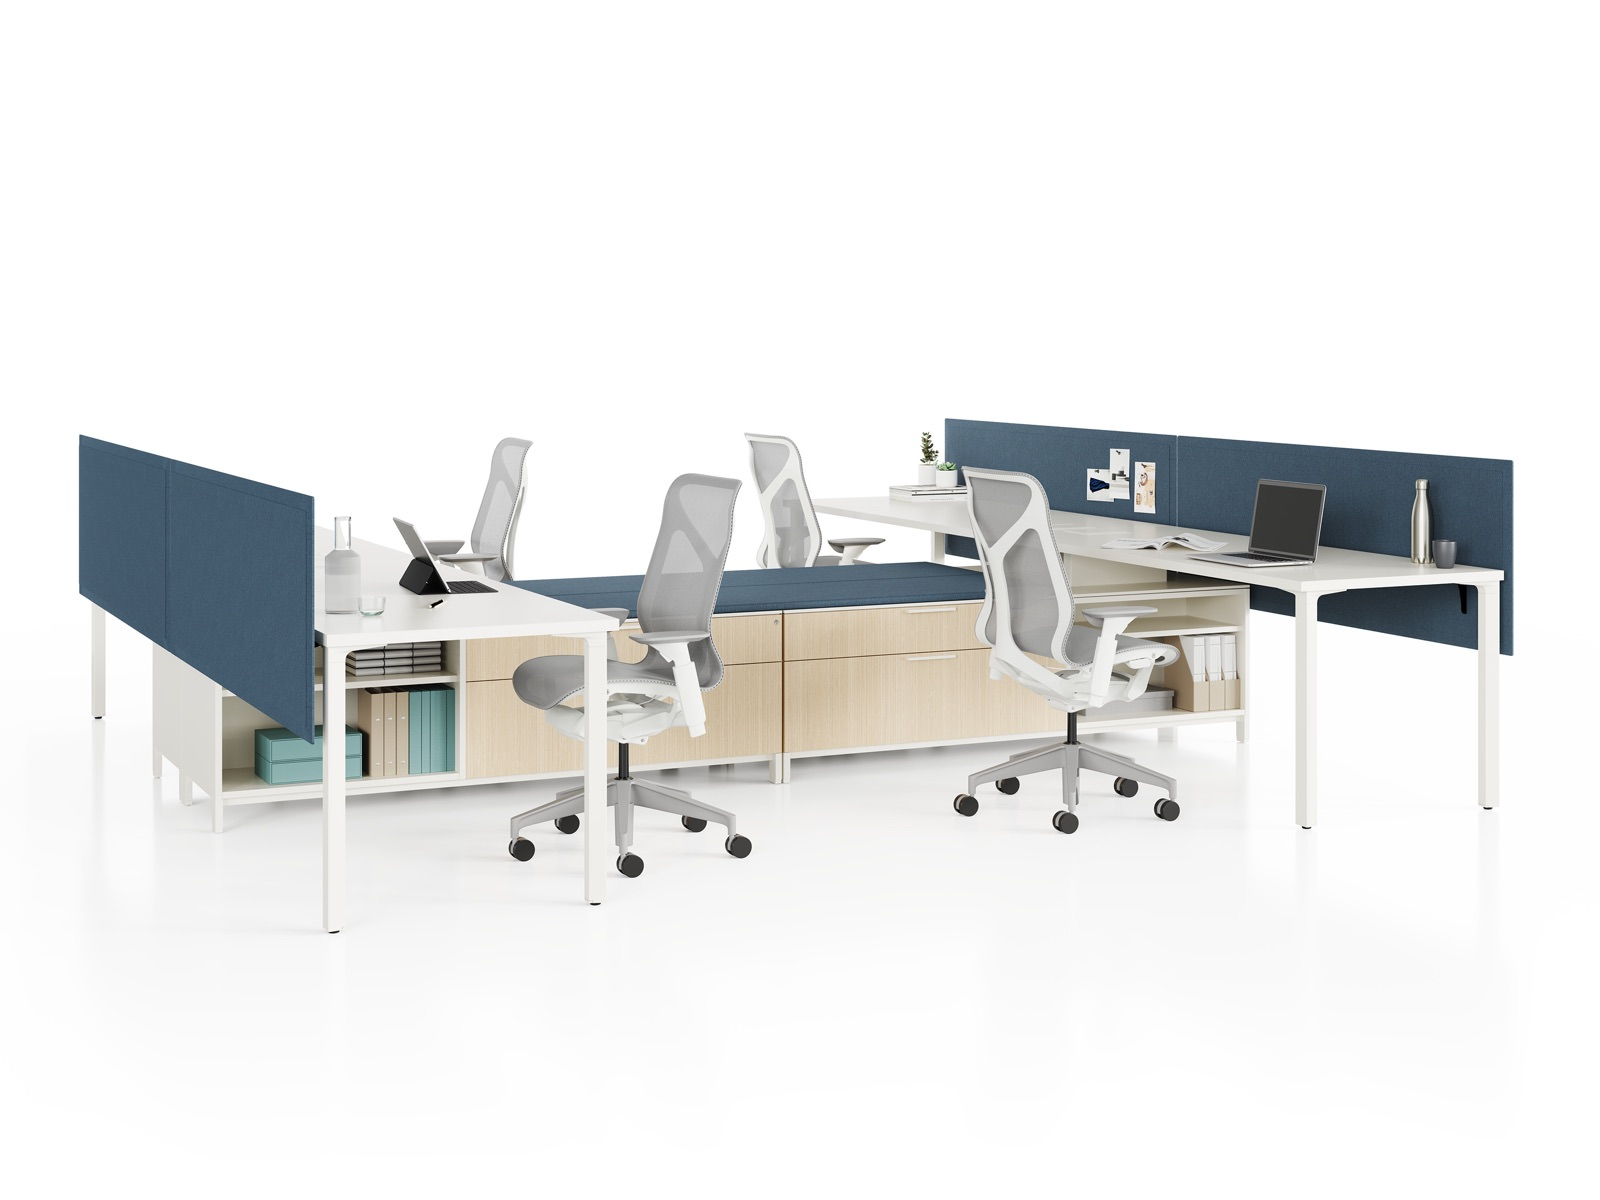 Group of four Canvas Storage workstations with white surfaces, blue screens, and grey Cosm Chairs.